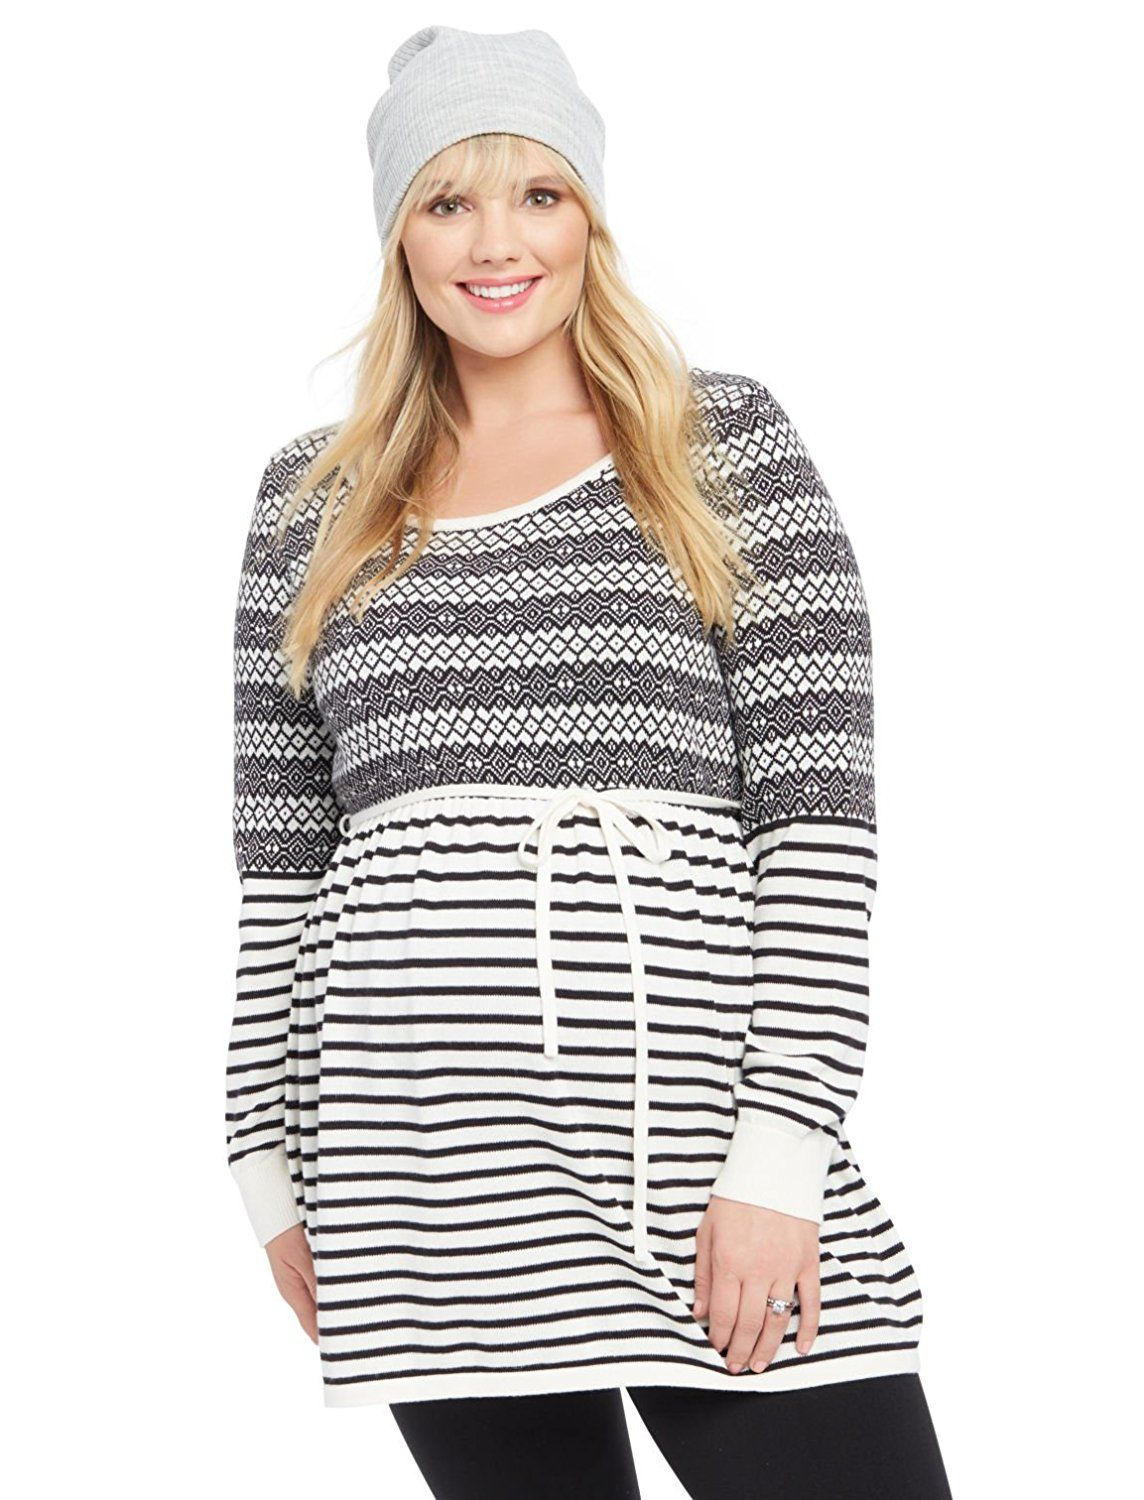 edee6196b7a06 Motherhood Plus Size Fairisle Babydoll Maternity Sweater >>> Don't get left  behind, see this great product : Plus size maternity